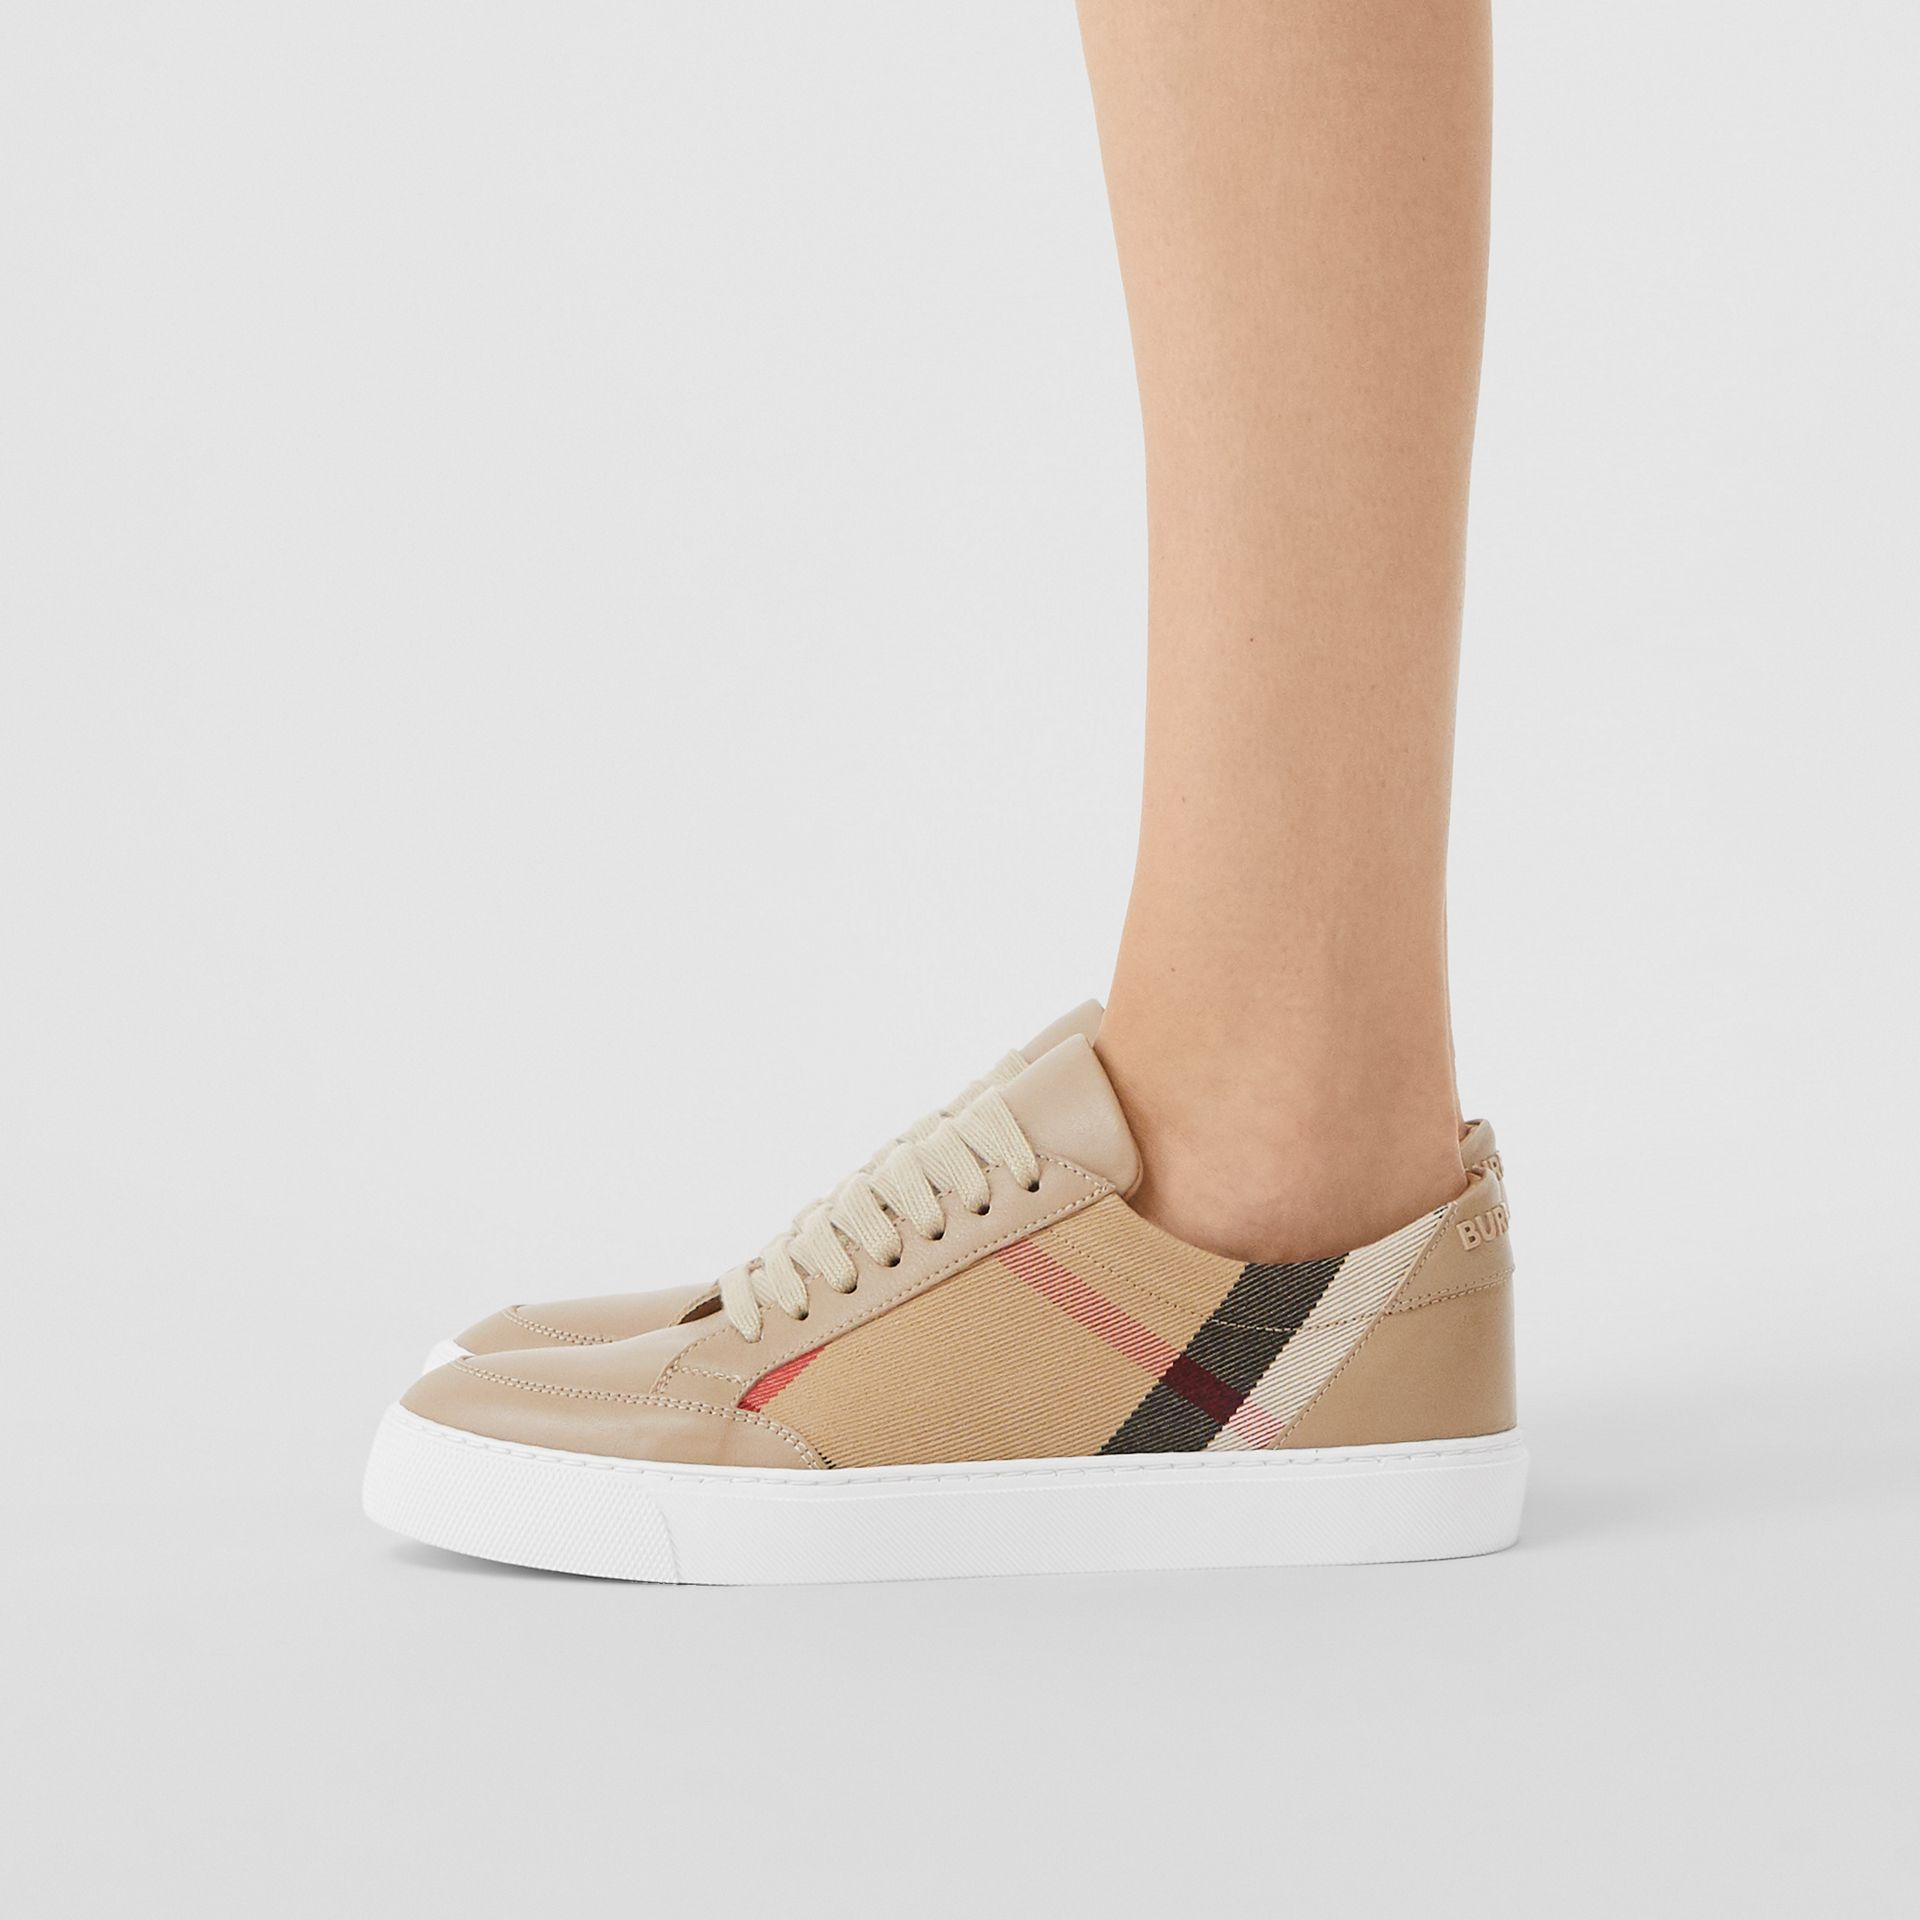 House Check and Leather Sneakers in Tan - Women | Burberry United Kingdom - gallery image 2